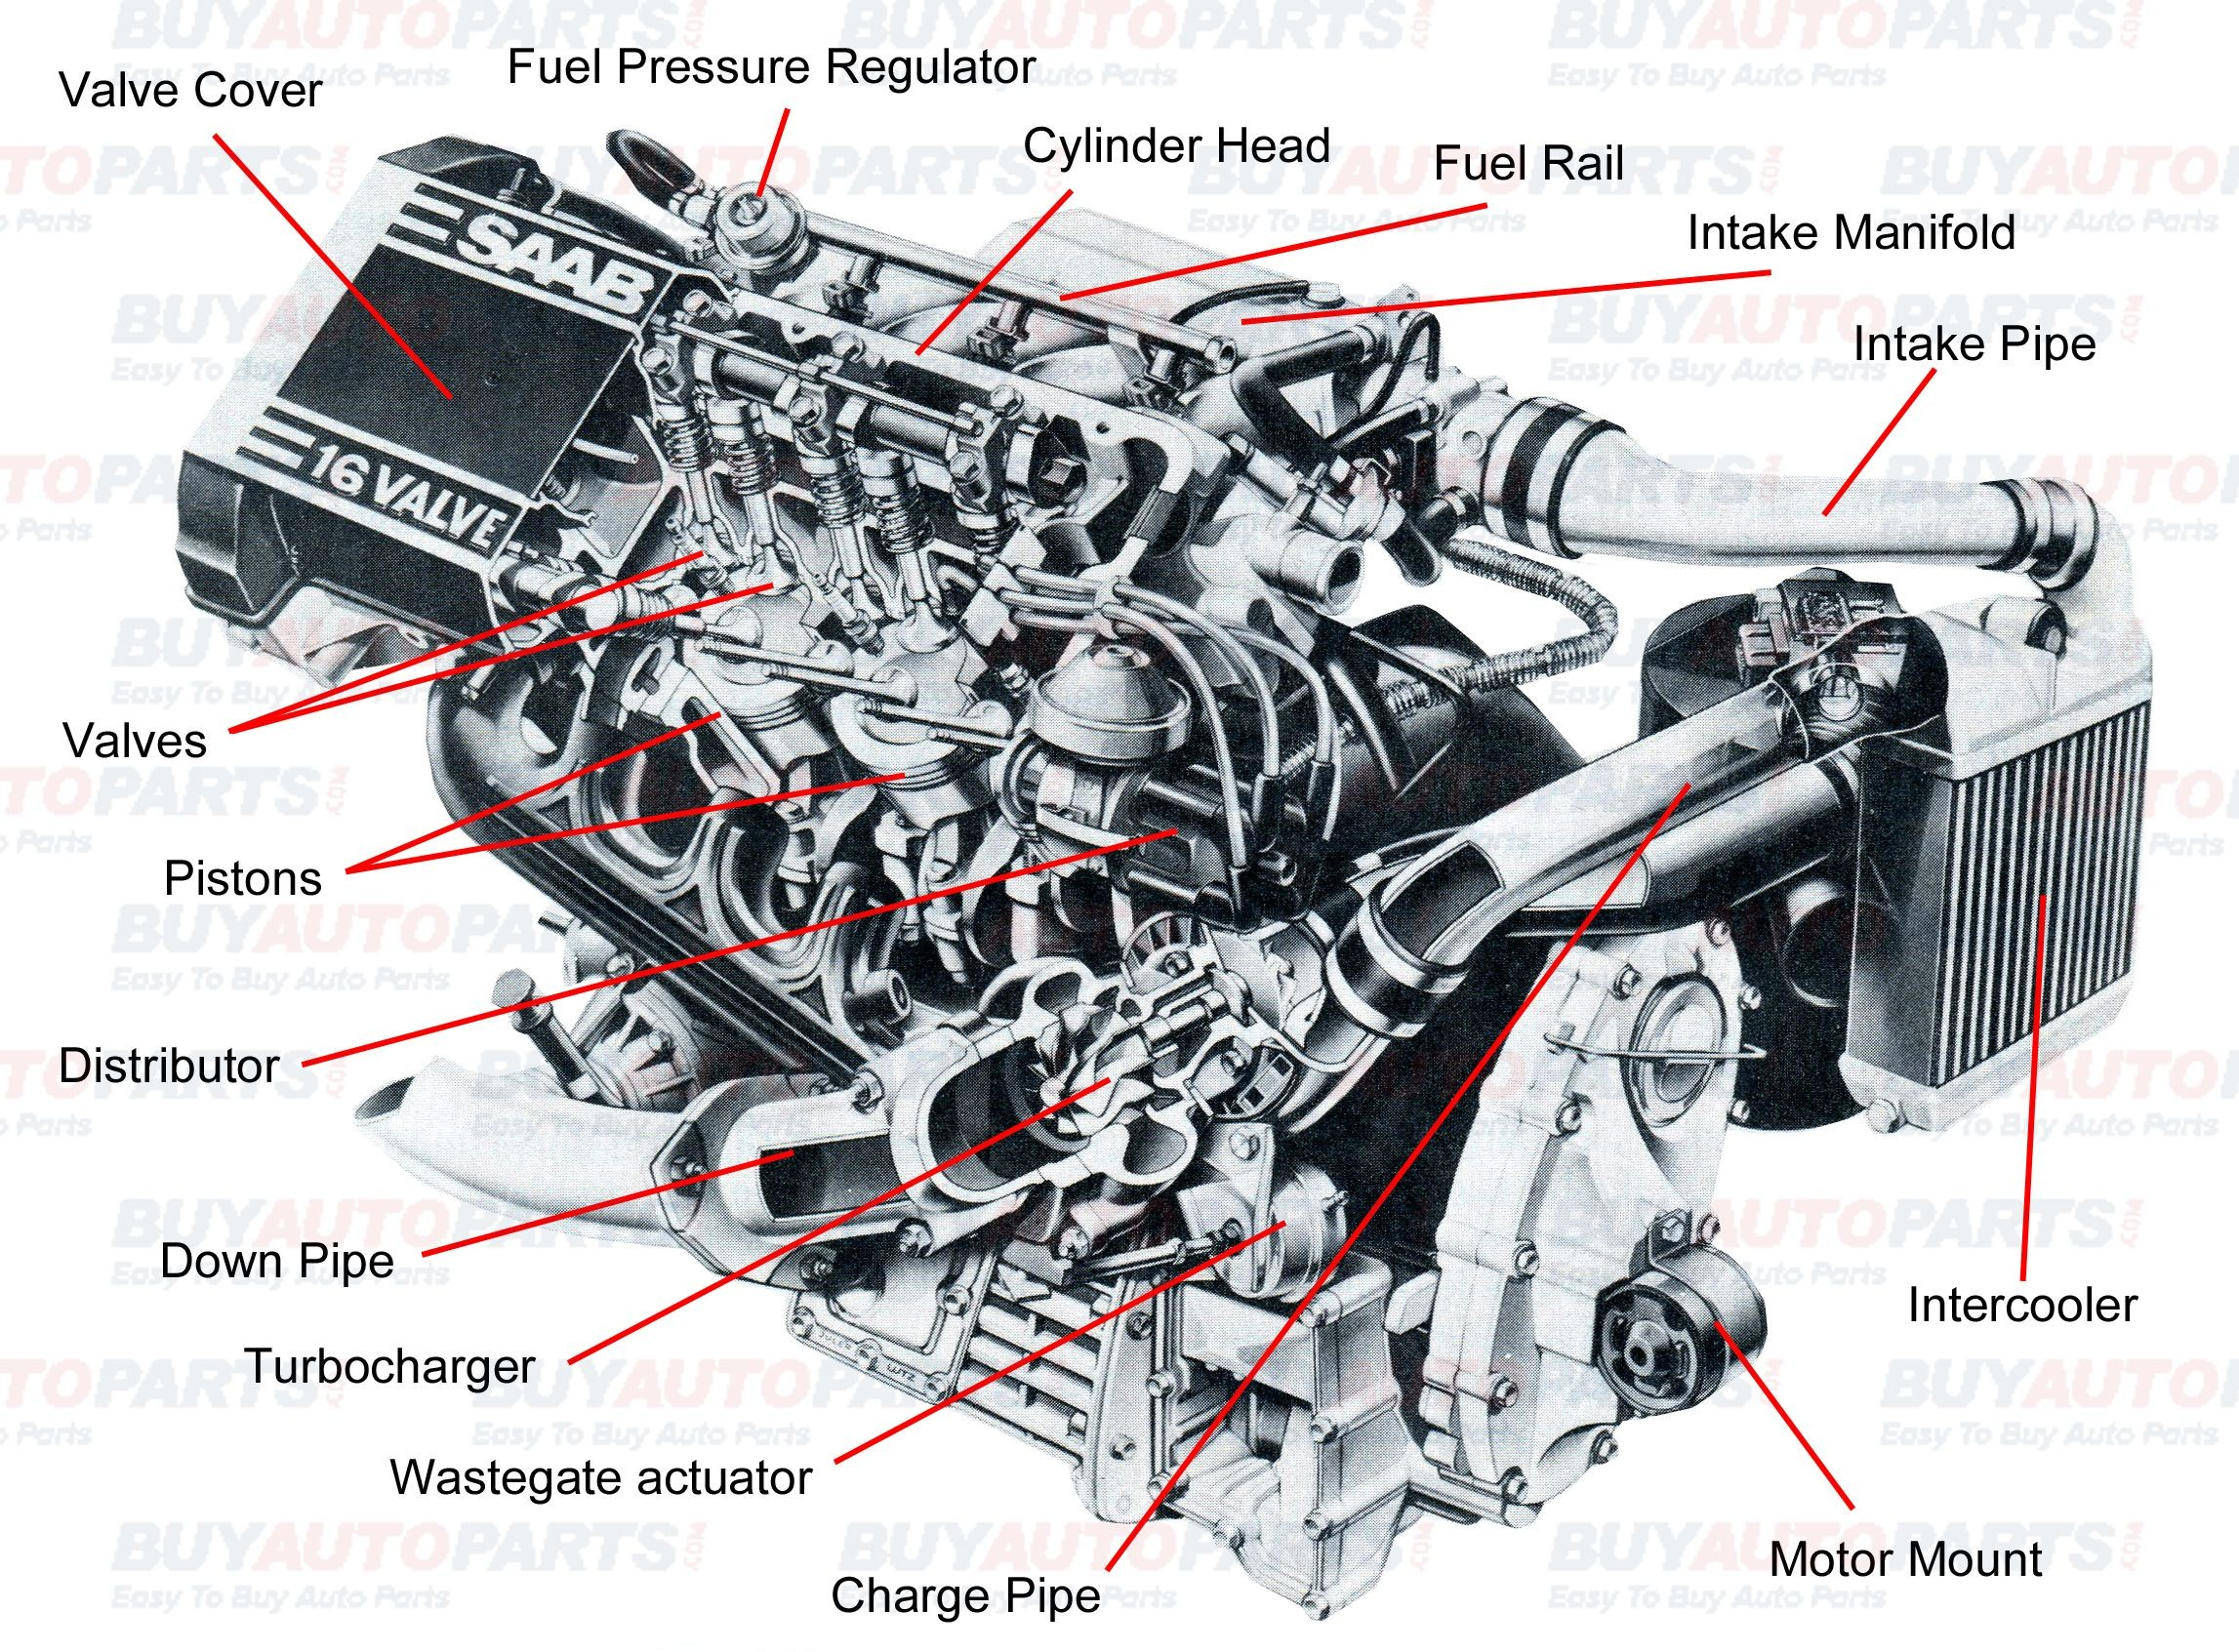 Gas Engine Parts Diagram Pin by Jimmiejanet Testellamwfz On What Does An Engine with Turbo Of Gas Engine Parts Diagram